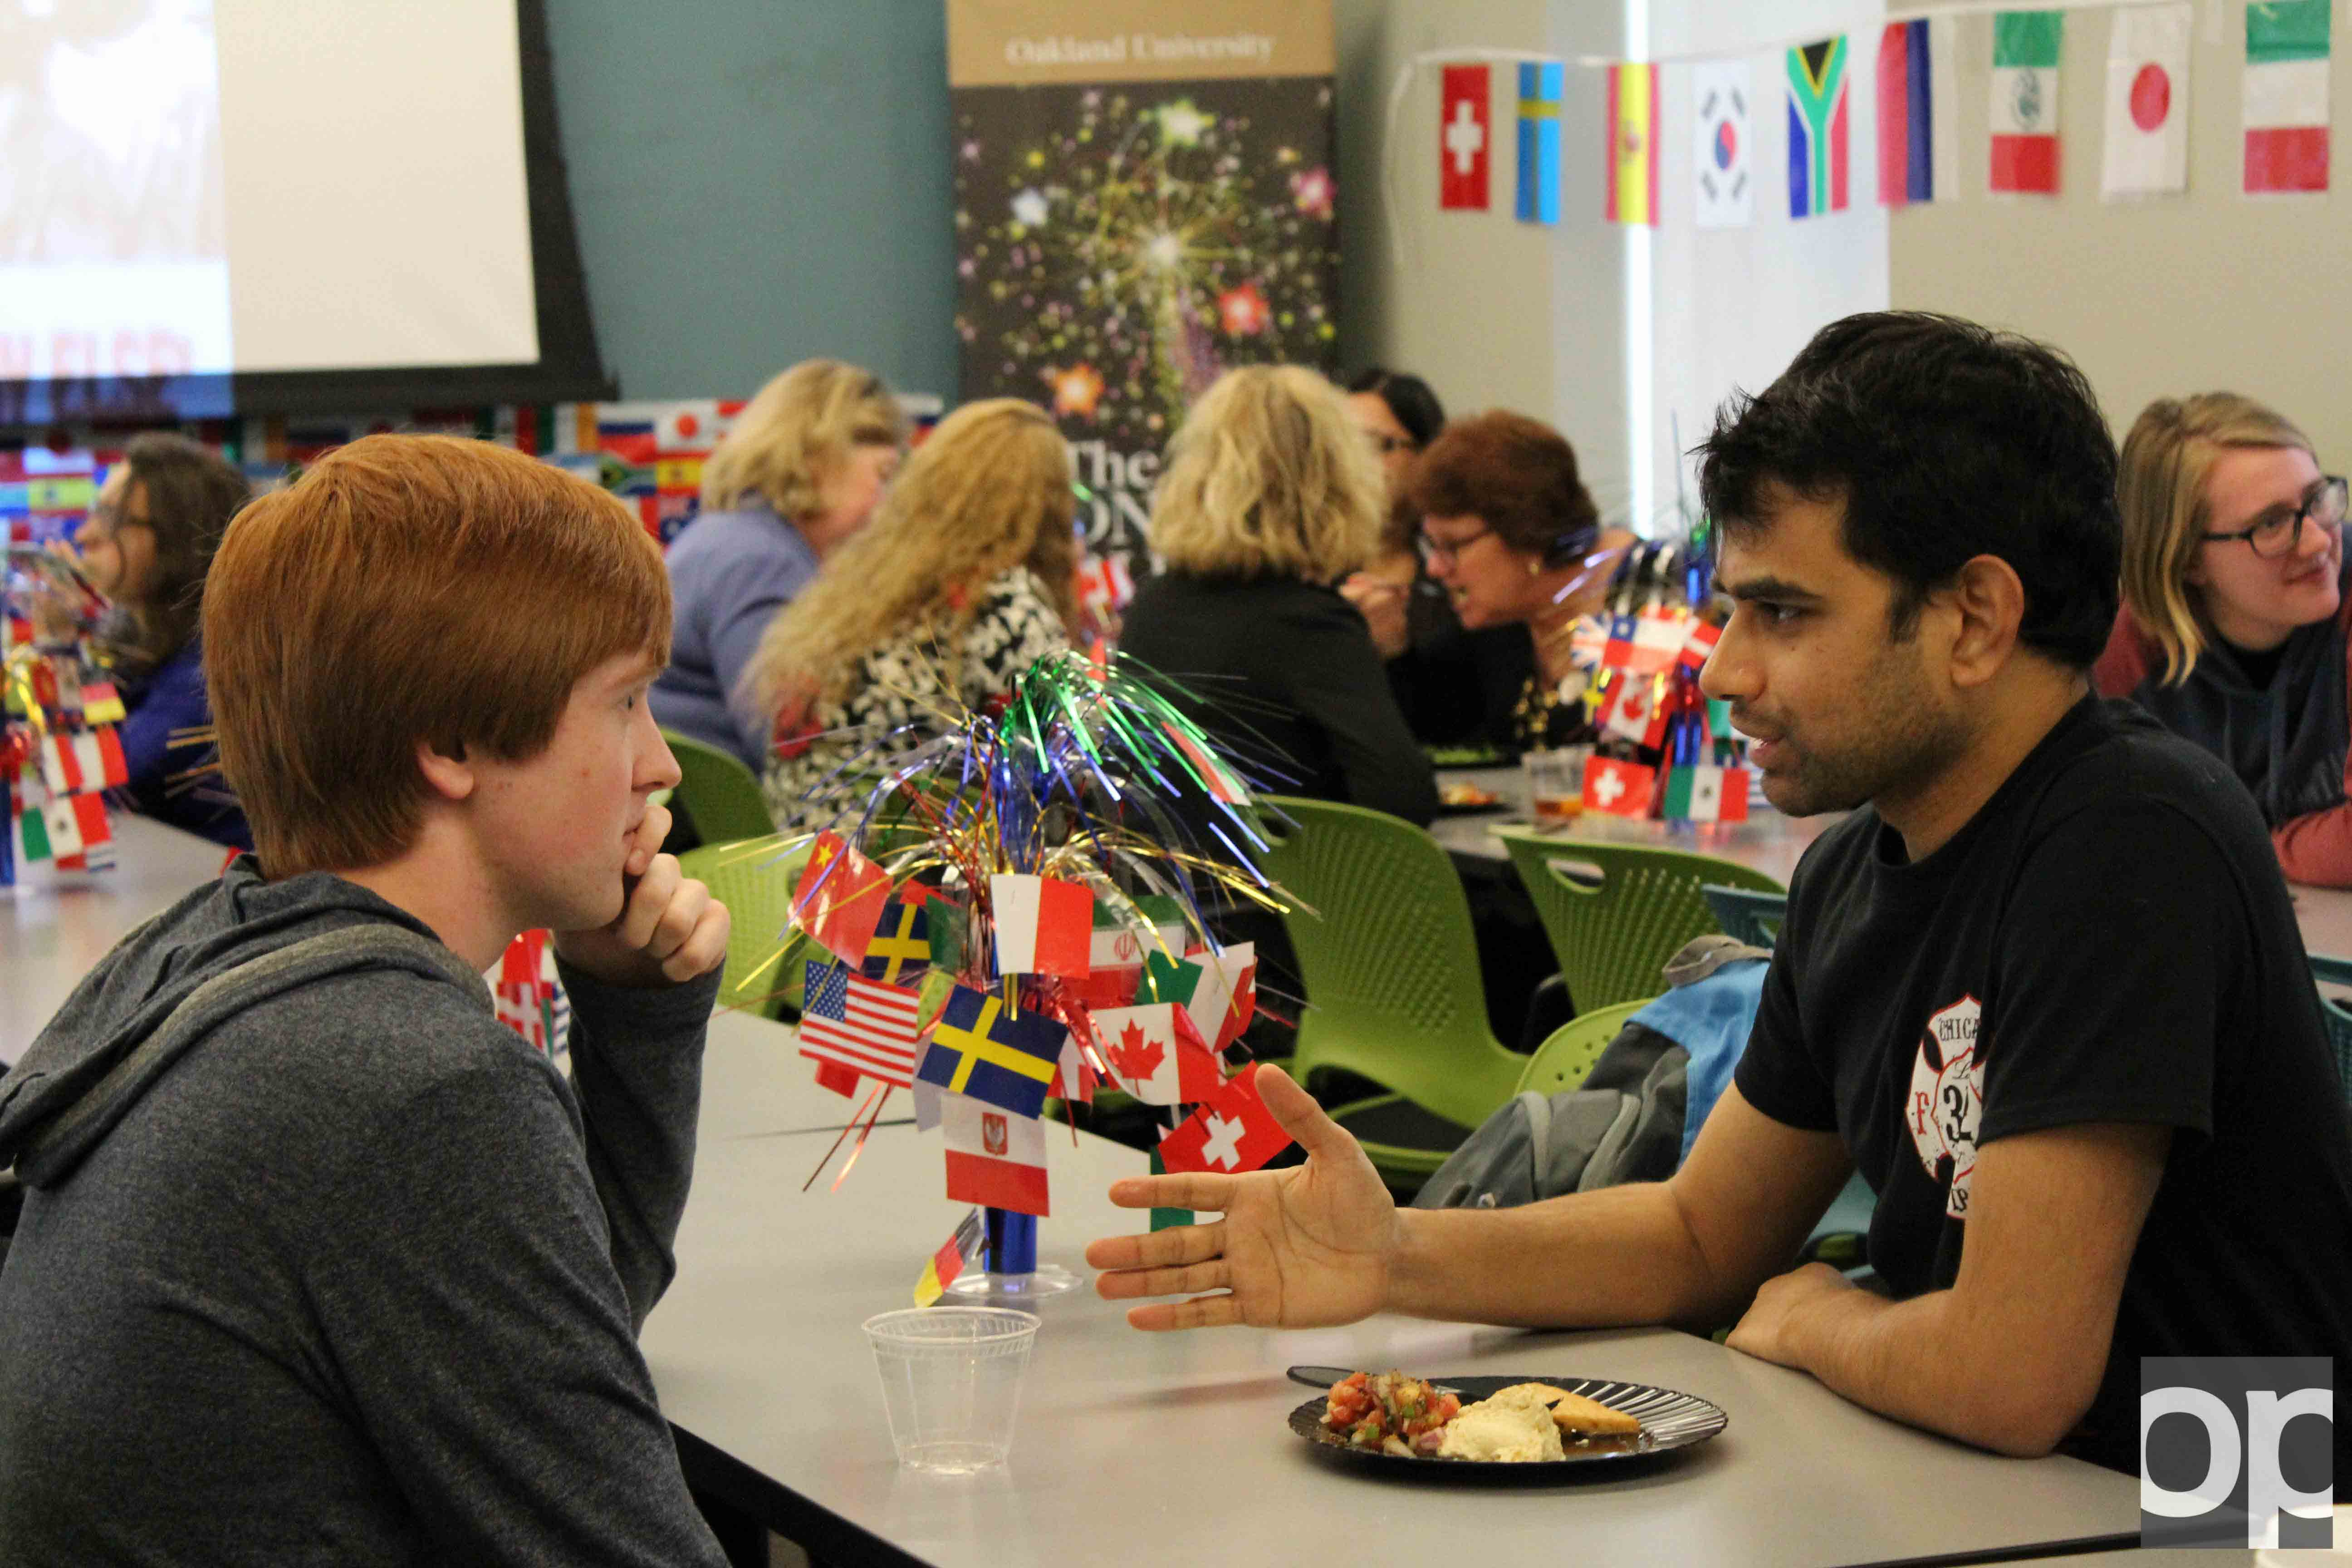 On Tuesday, Feb. 28 Honors College and International Students and Scholars  put on an event to  recognize global connections on campus through study abroad, language learning and cultural exploration.